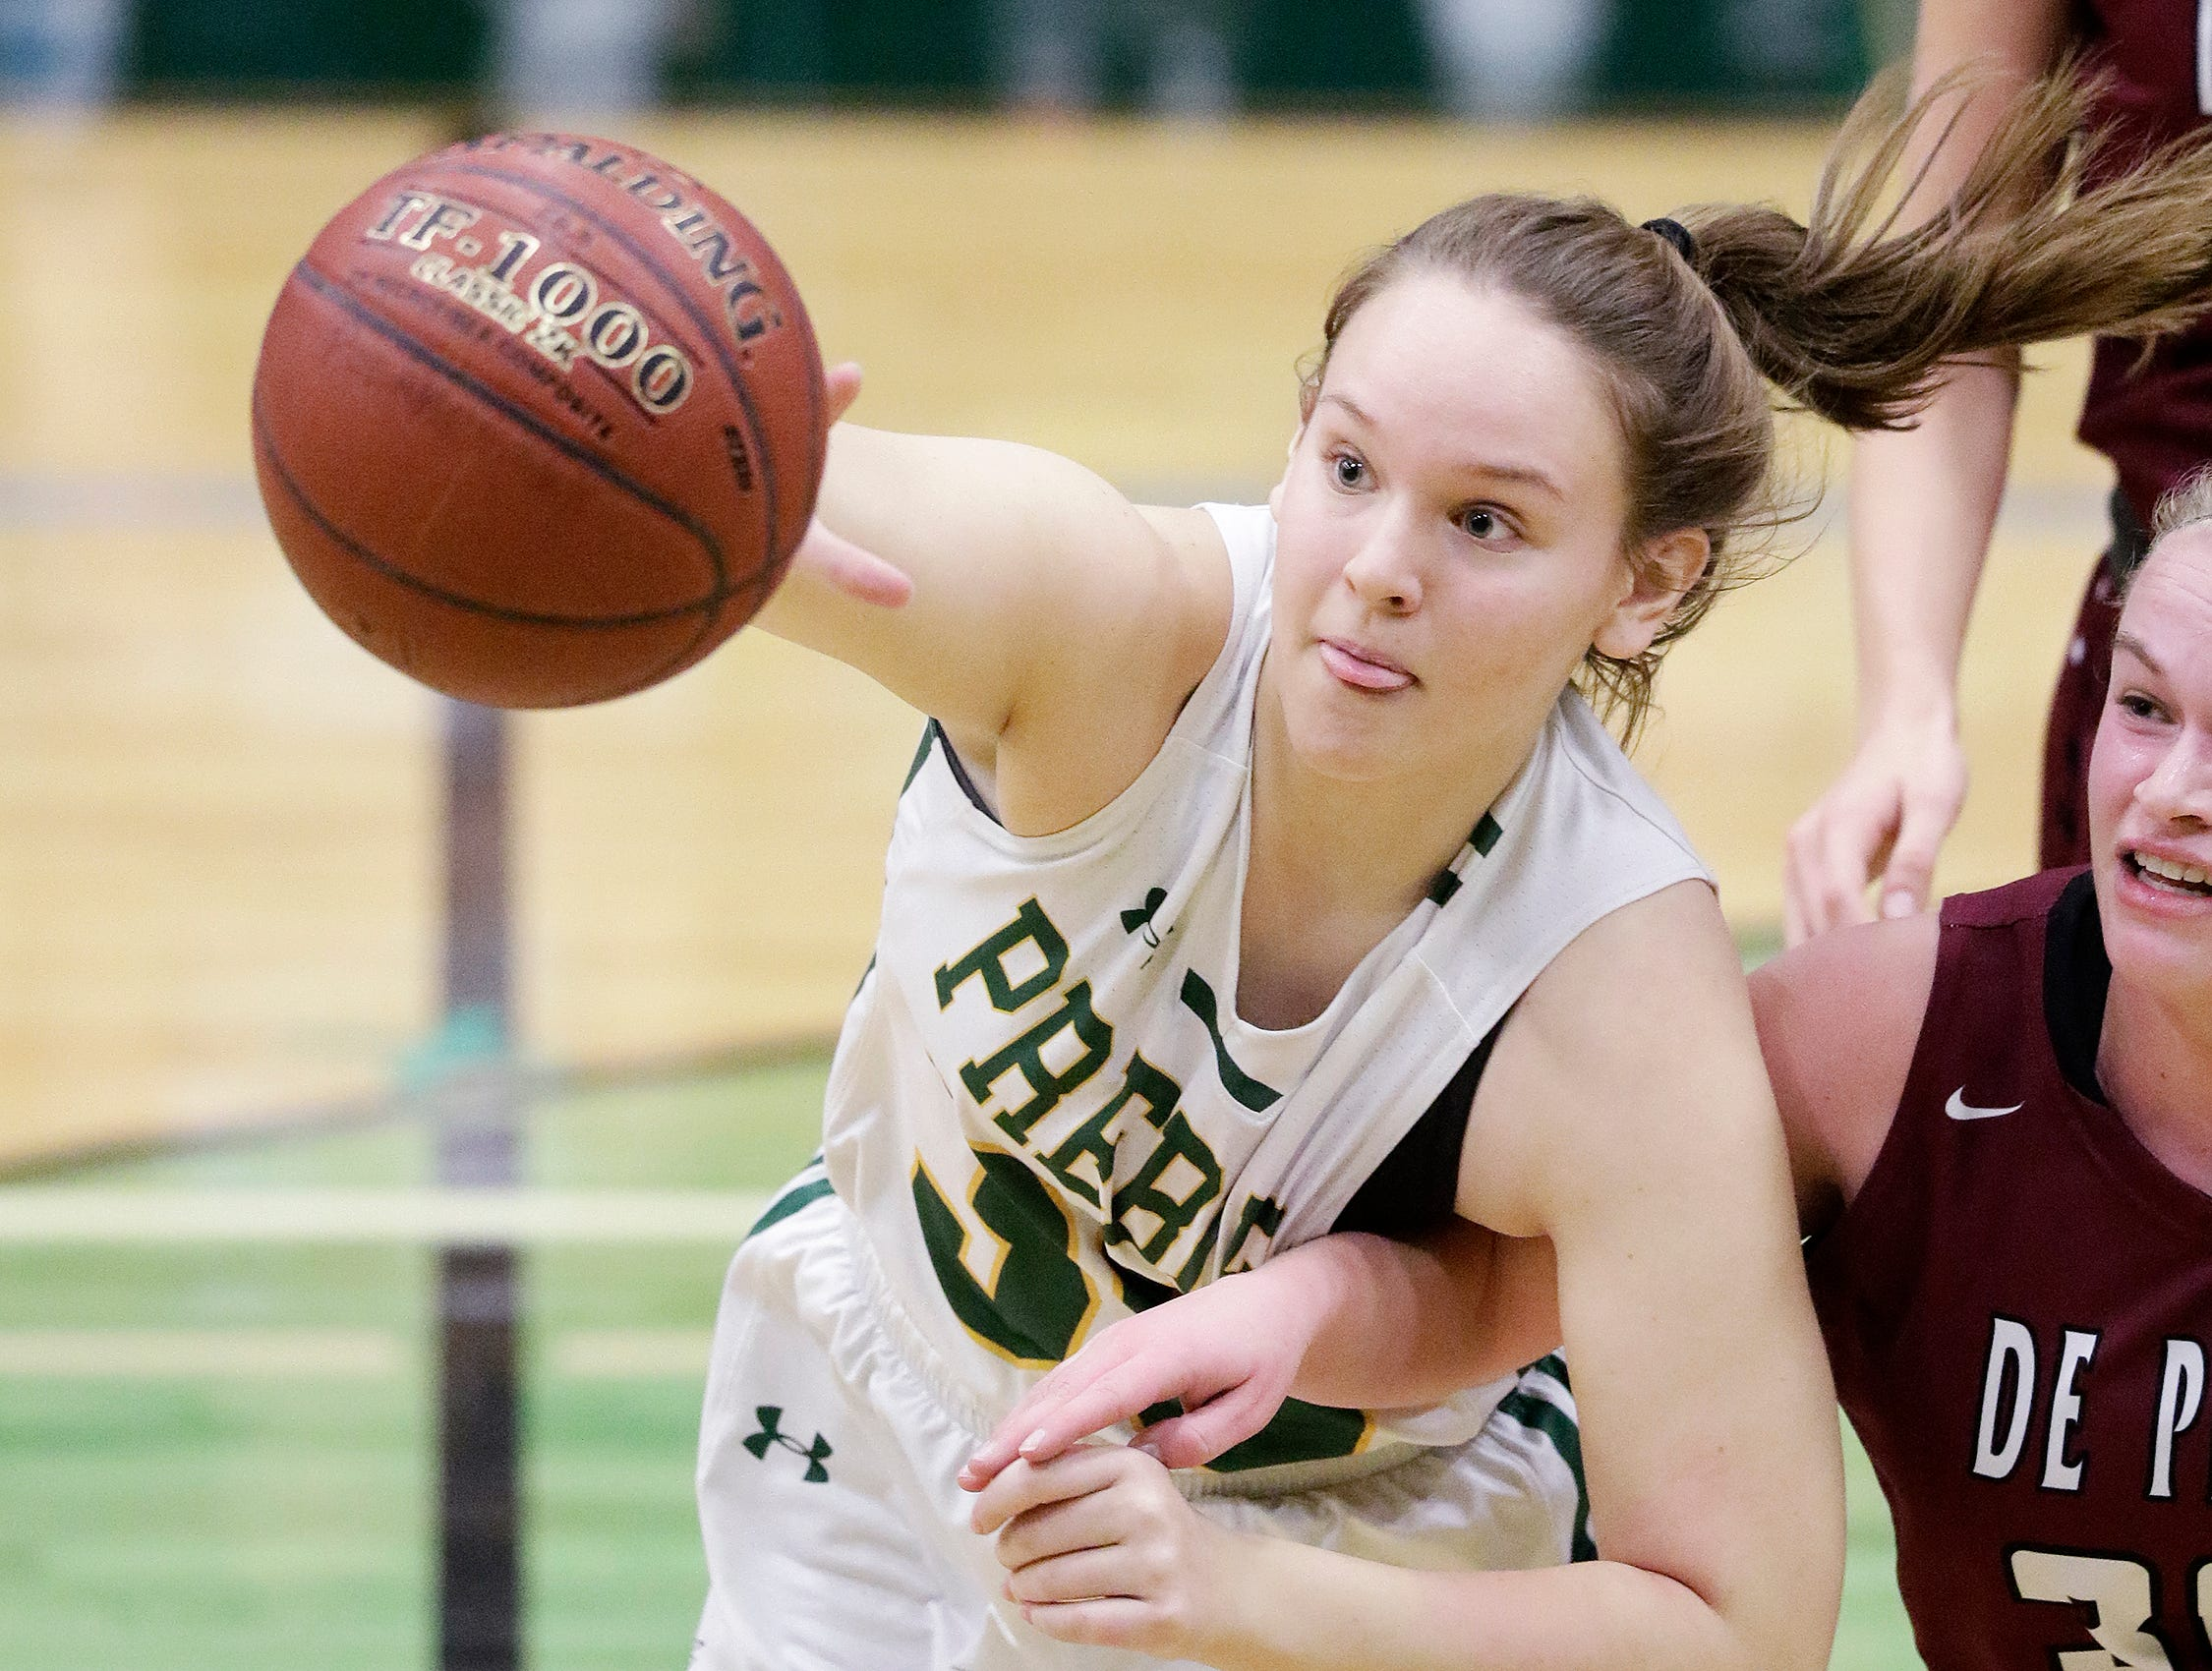 Green Bay Preble's Samantha Voelker (30) grabs a rebound ahead of De Pere's Rachel Kerkhoff (30) in a girls basketball game at Preble high school on Tuesday, January 8, 2019 in Green Bay, Wis.